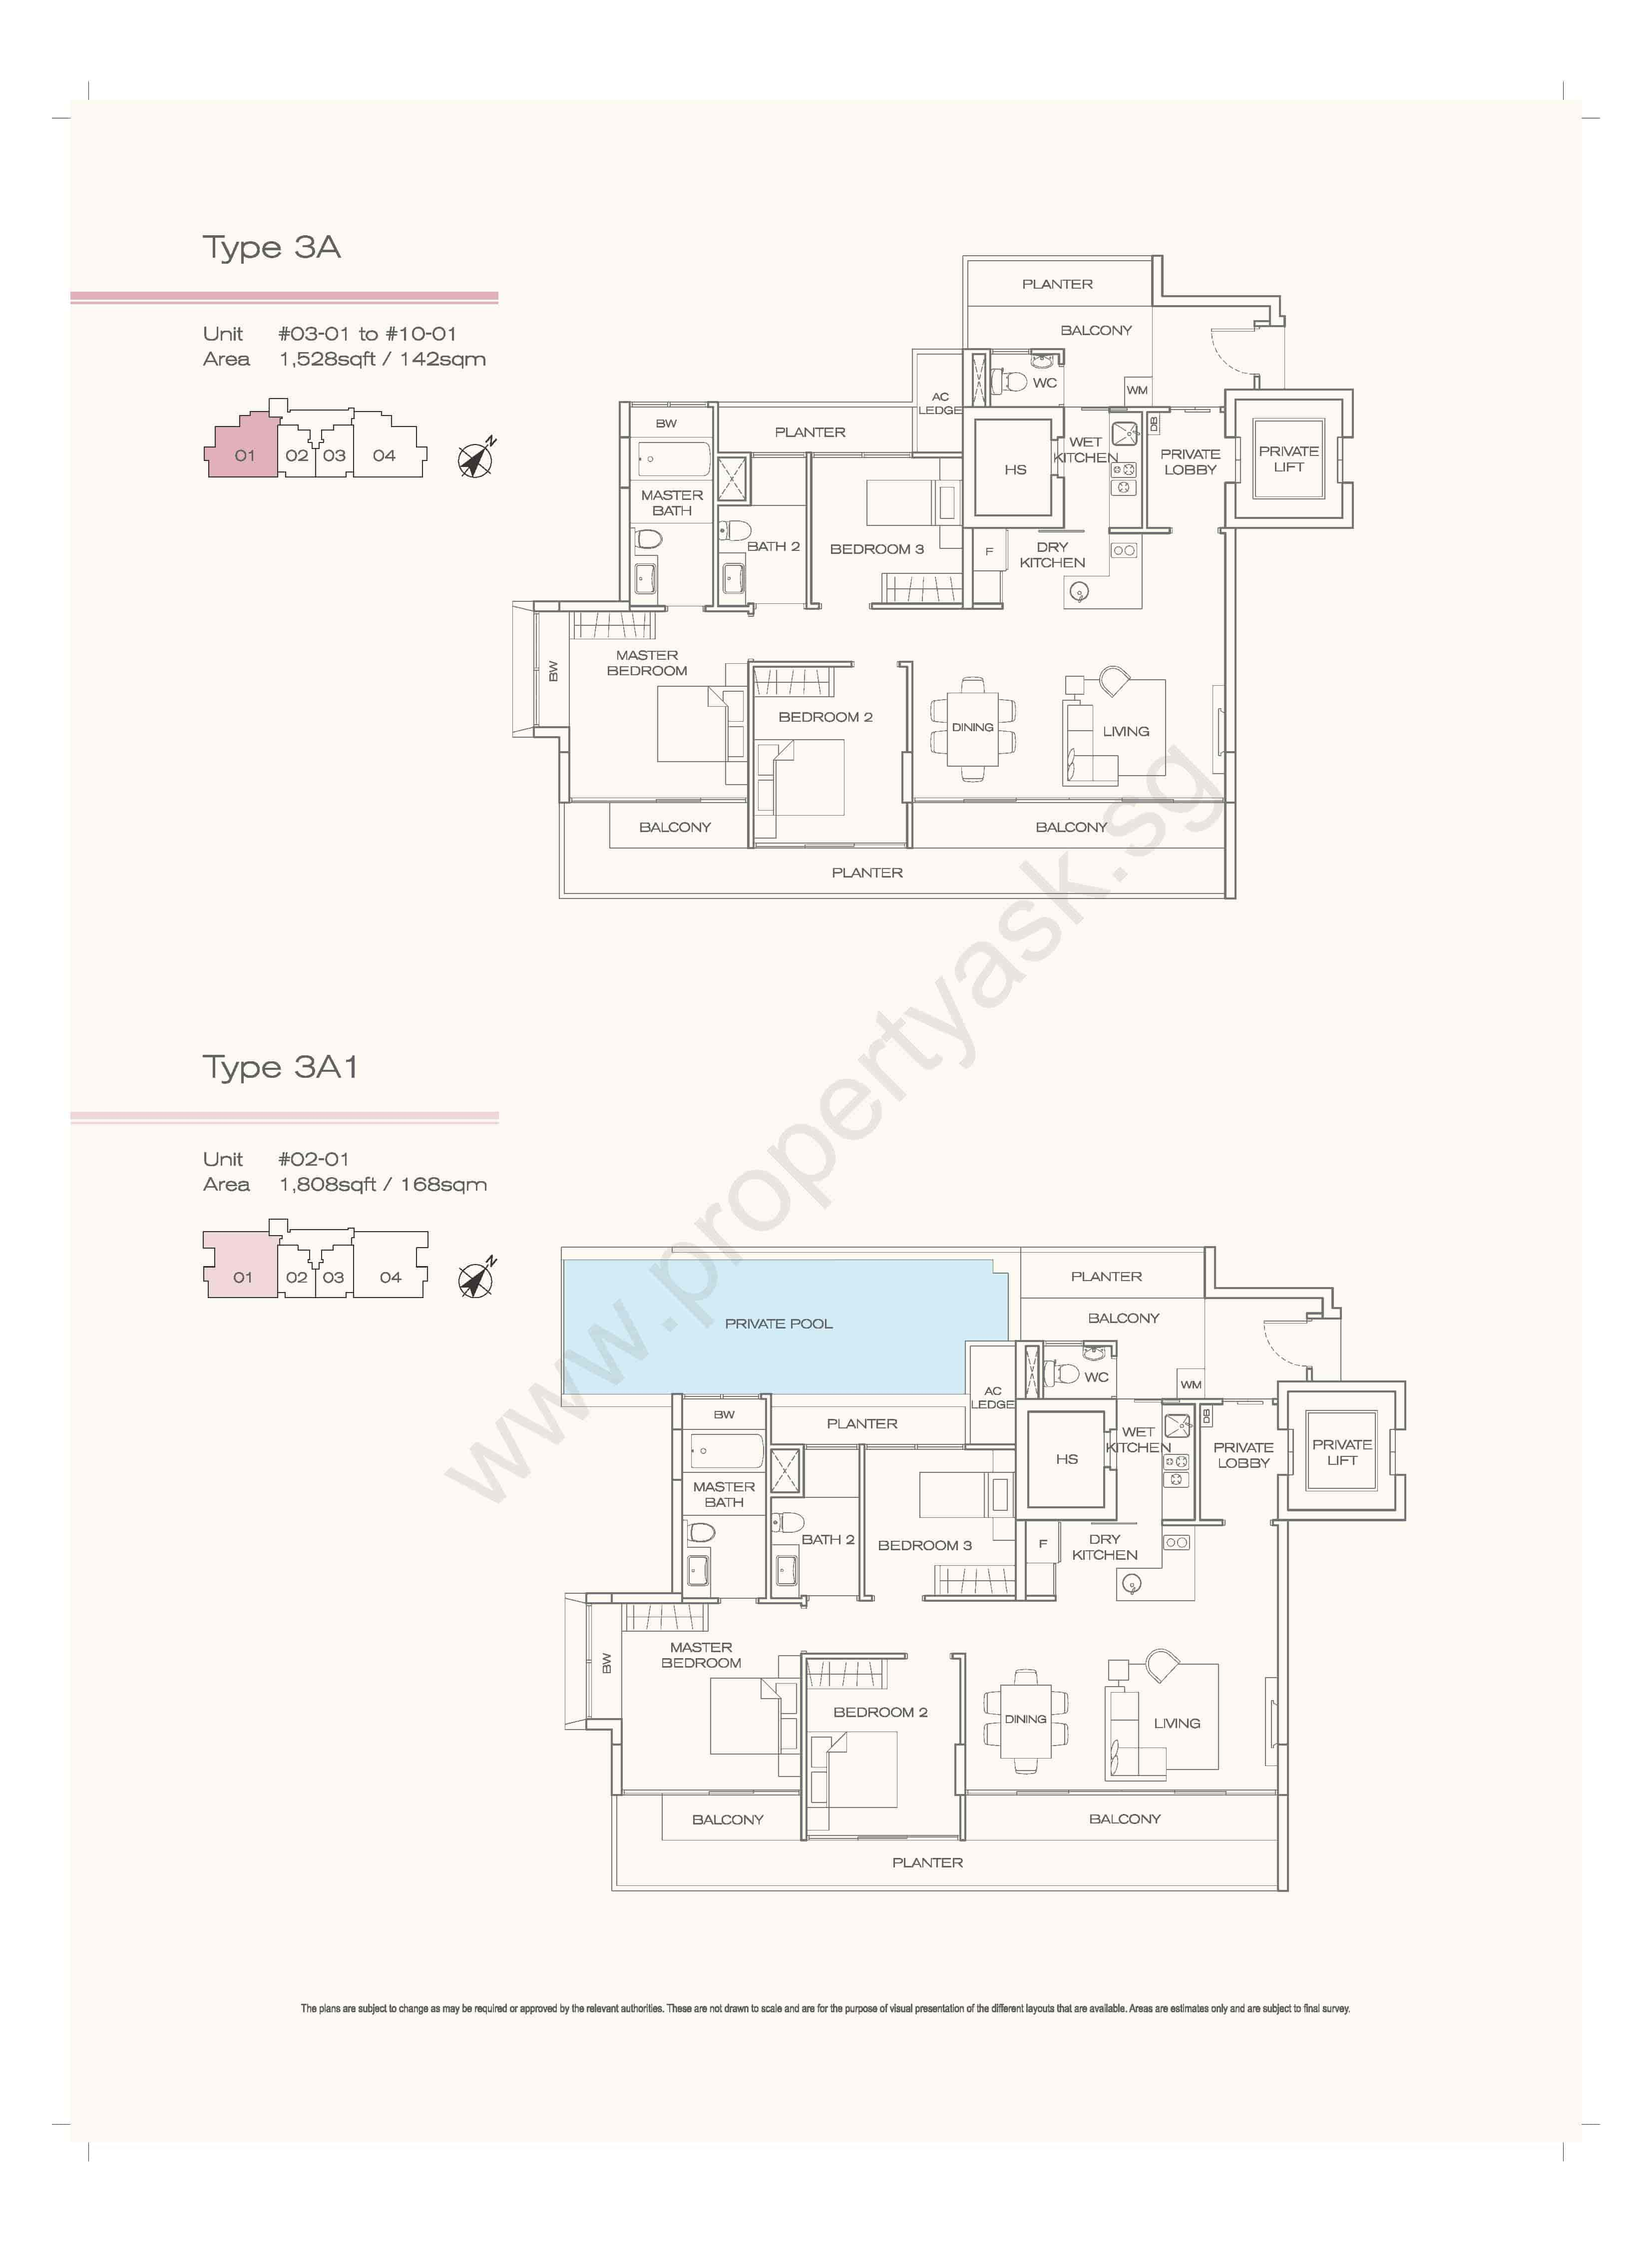 Type 3A - 3 Bedrooms Private Lift